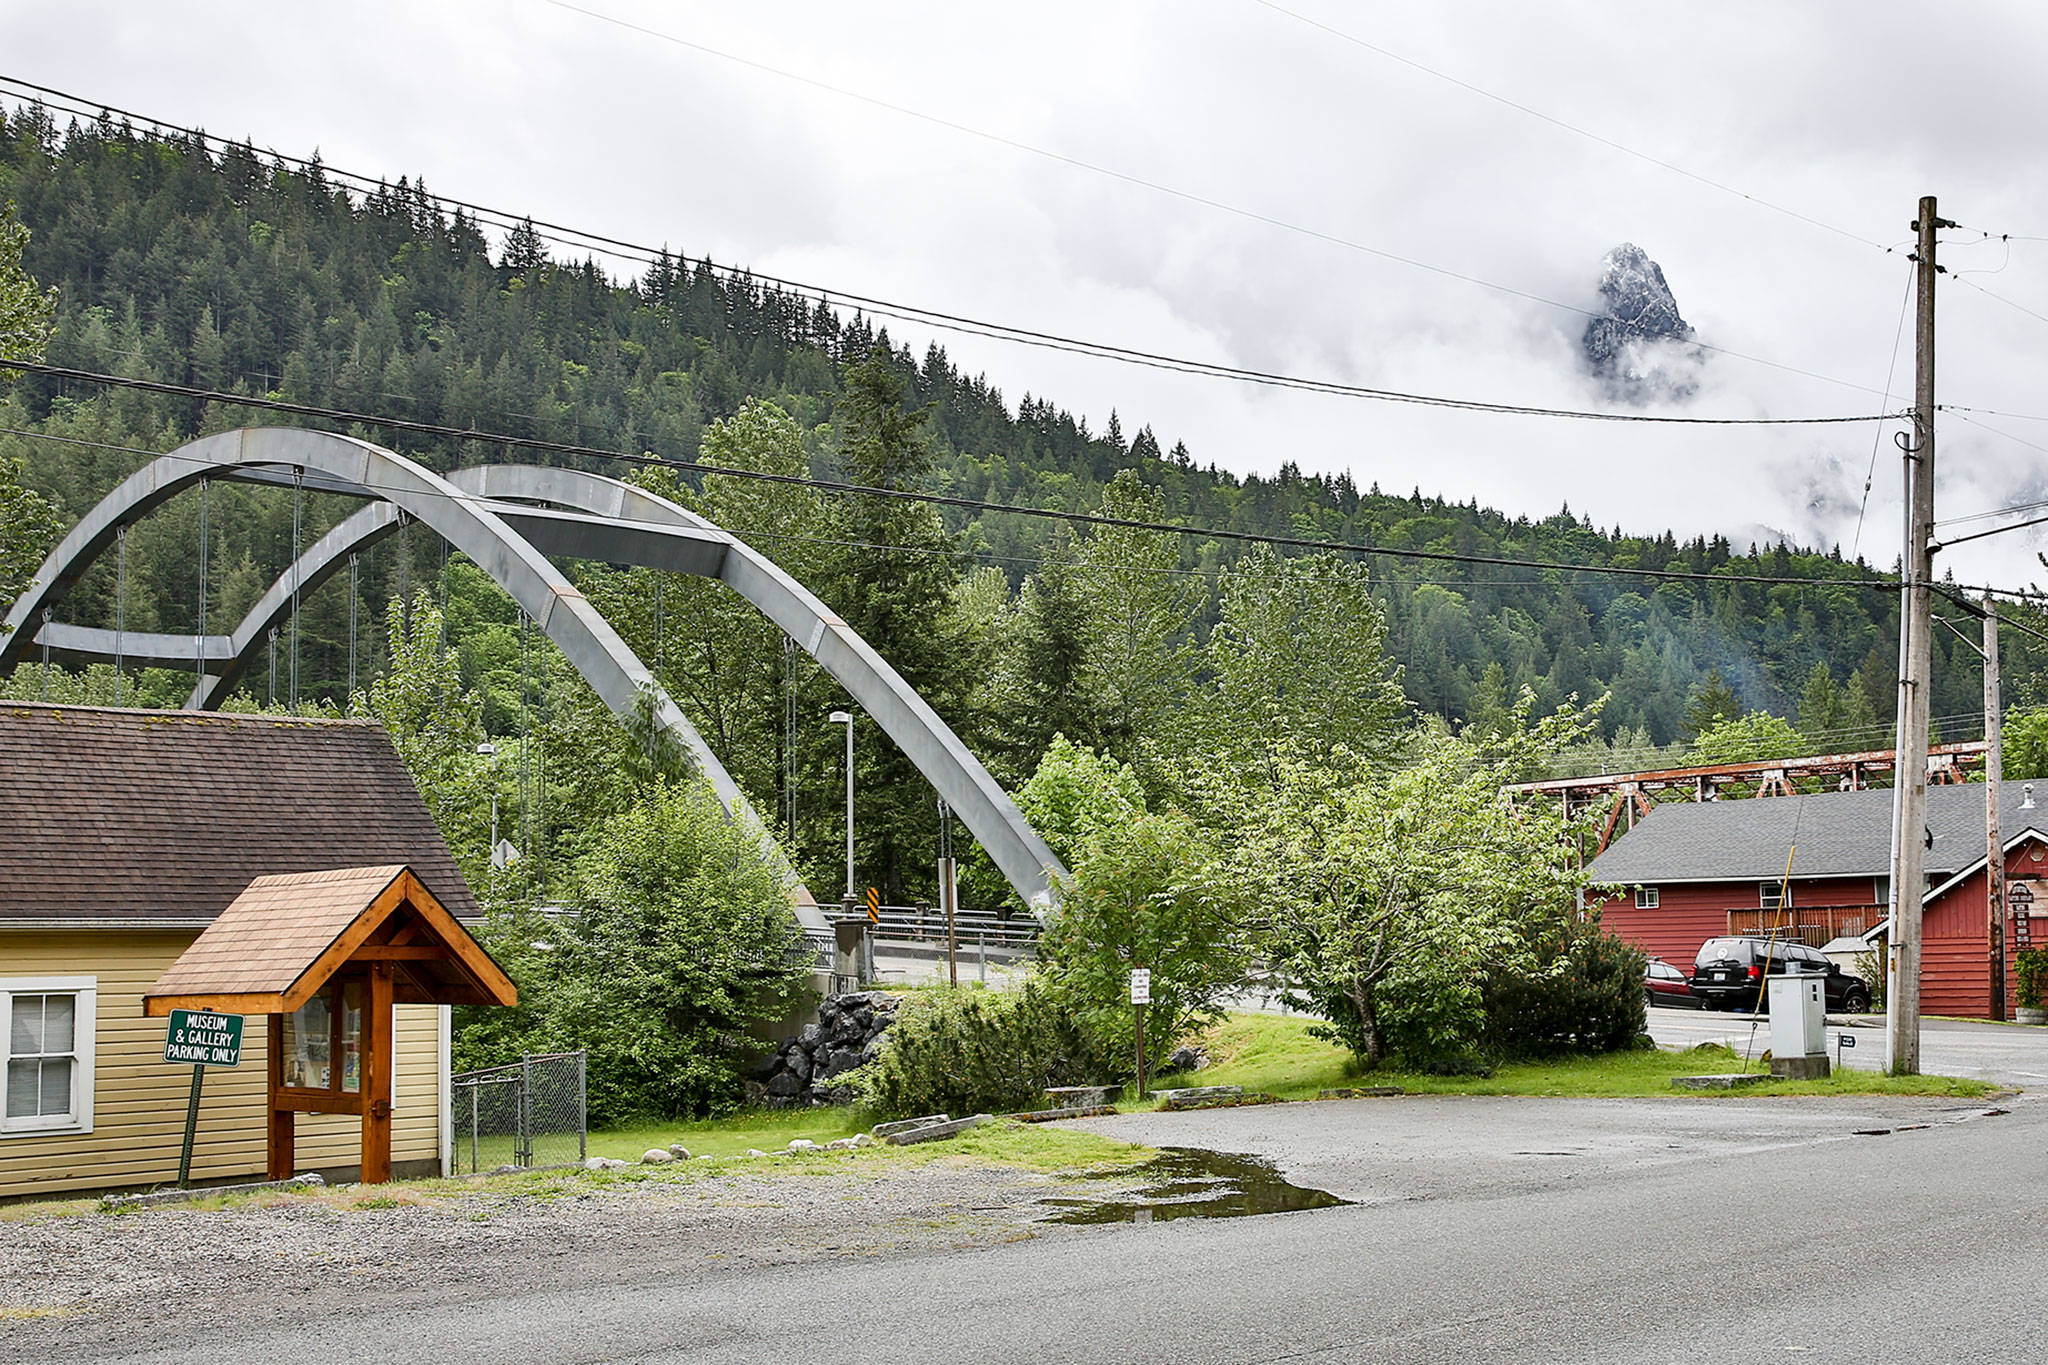 Index is the last Snohomish County town with no reported COVID-19 cases. (Kevin Clark / The Herald)